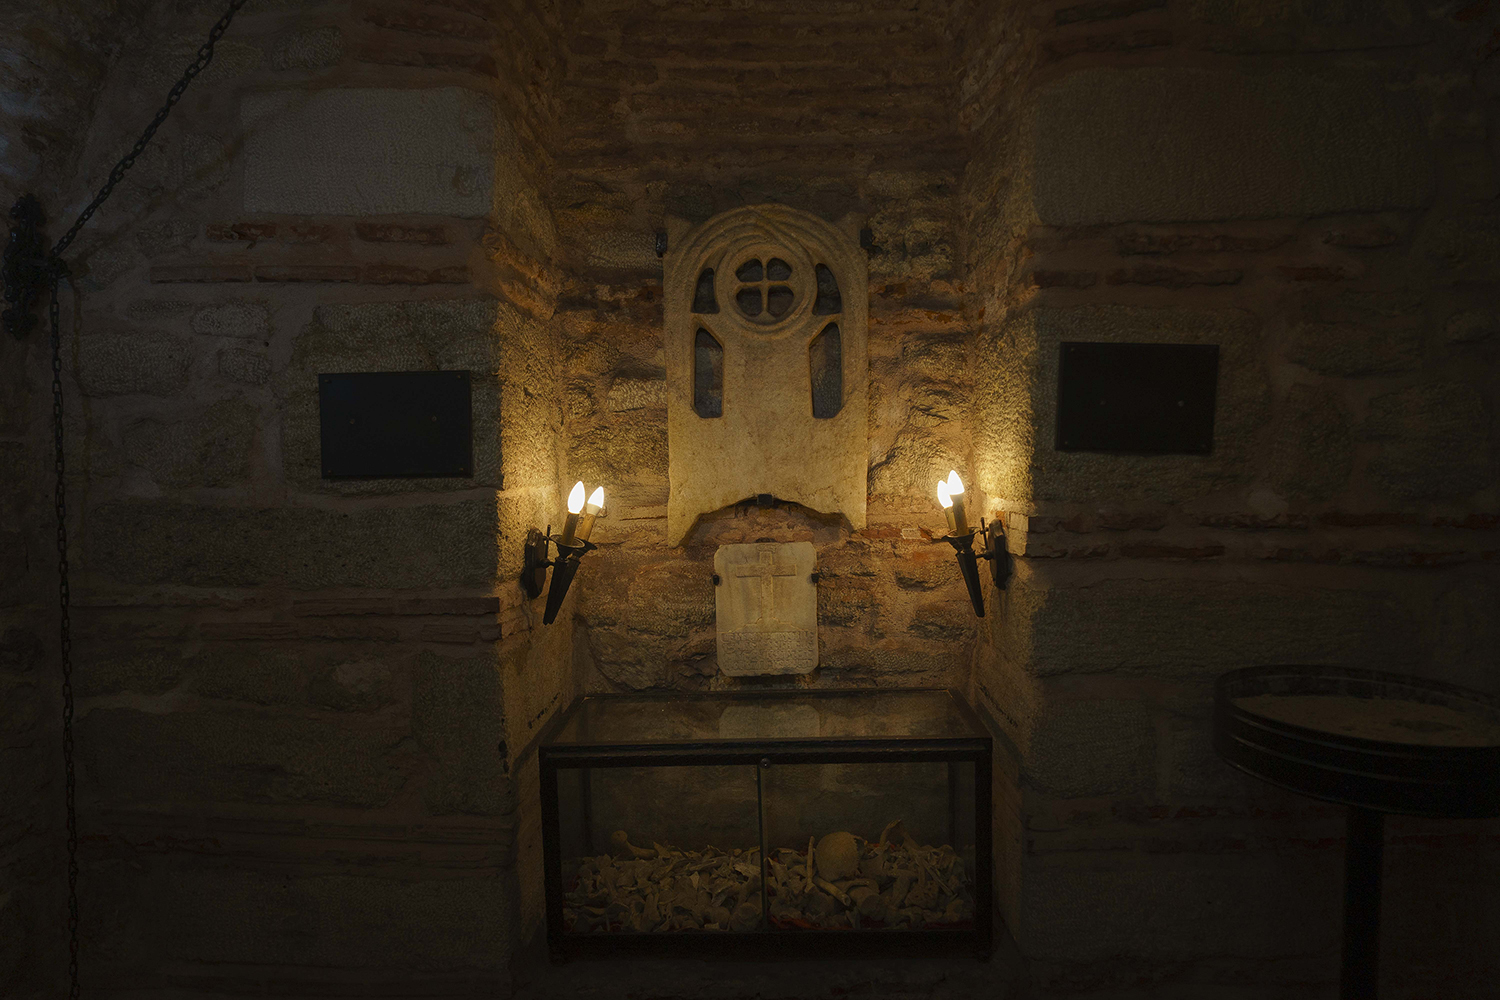 Relics of saints in the Surp Hıreşdagabed Church in Istanbul.